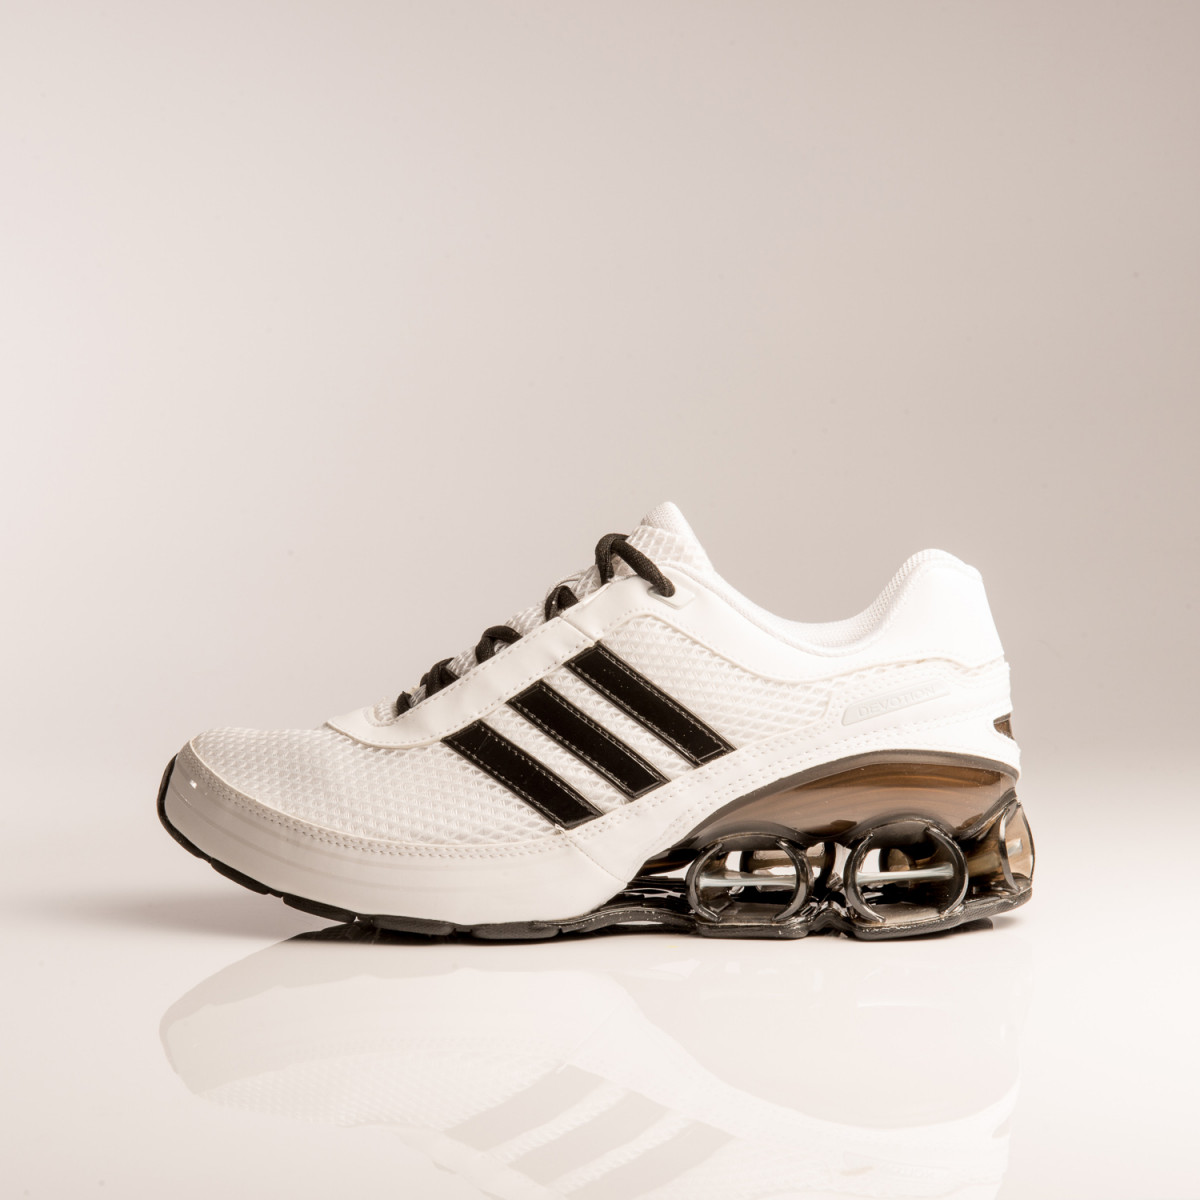 ZAPATILLAS ADIDAS DEVOTION PB 3M MET